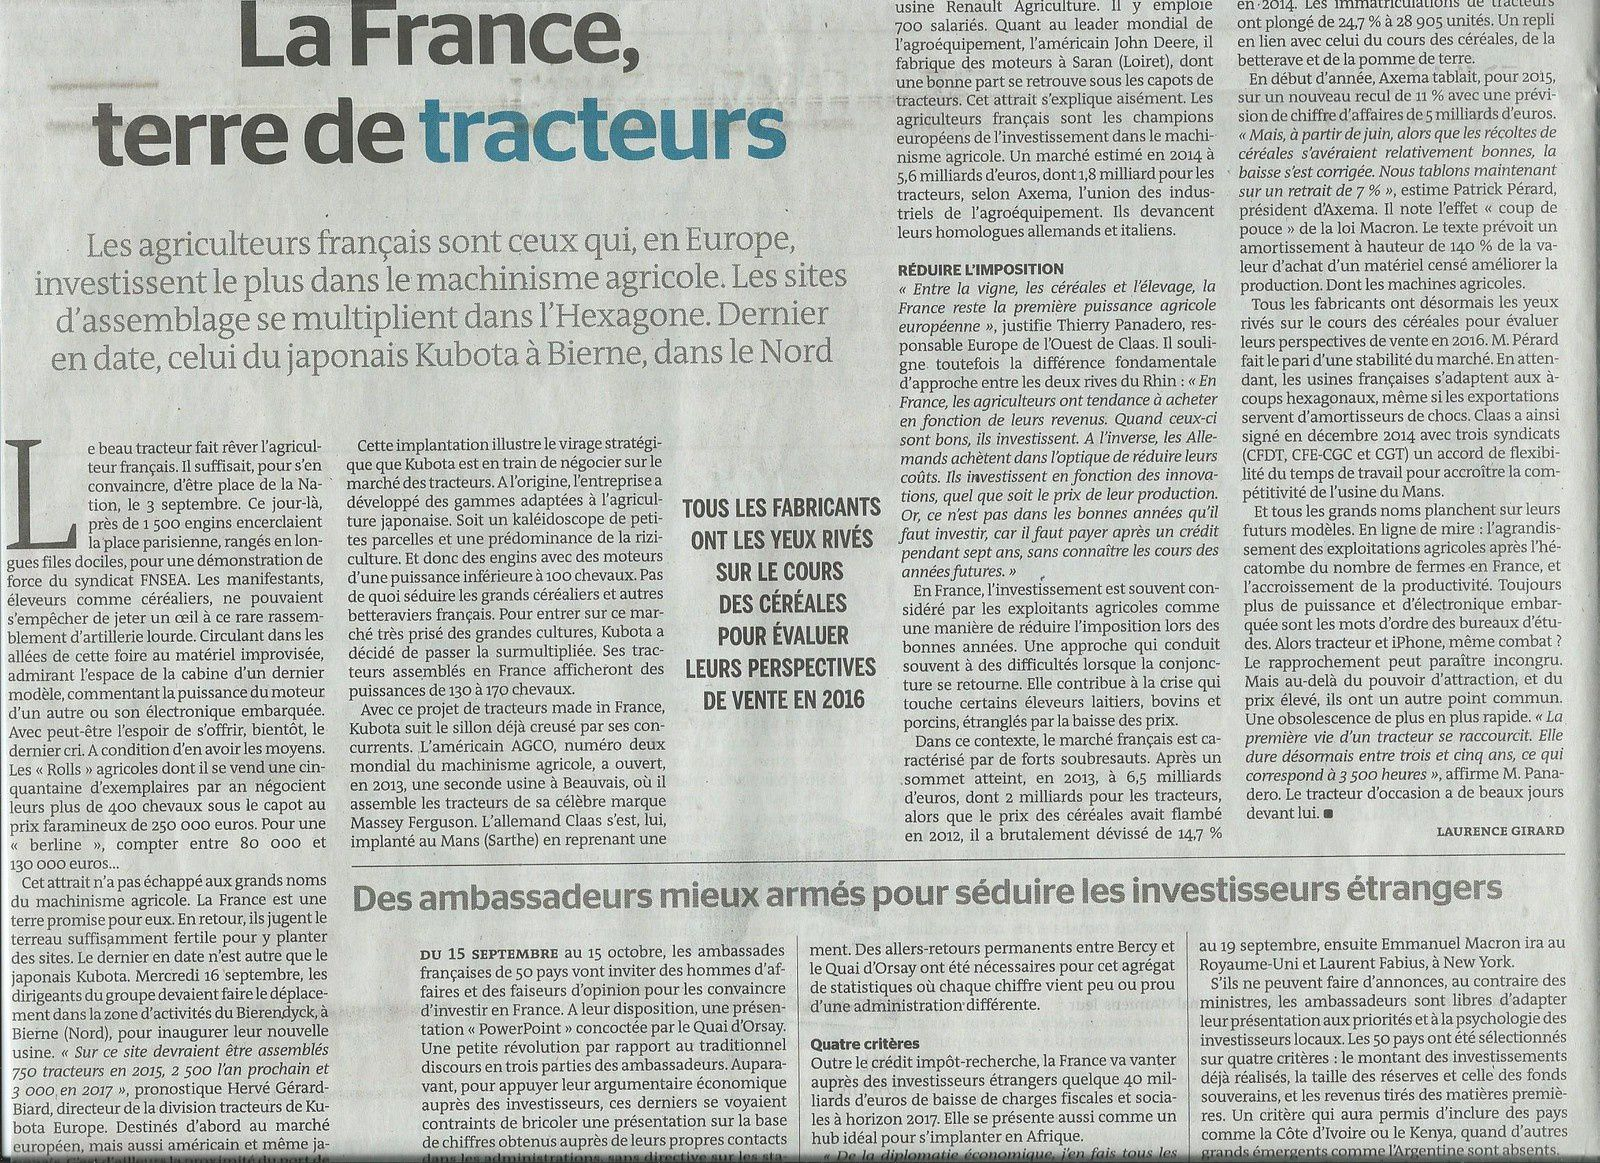 La France, mutation des espaces productifs : documents